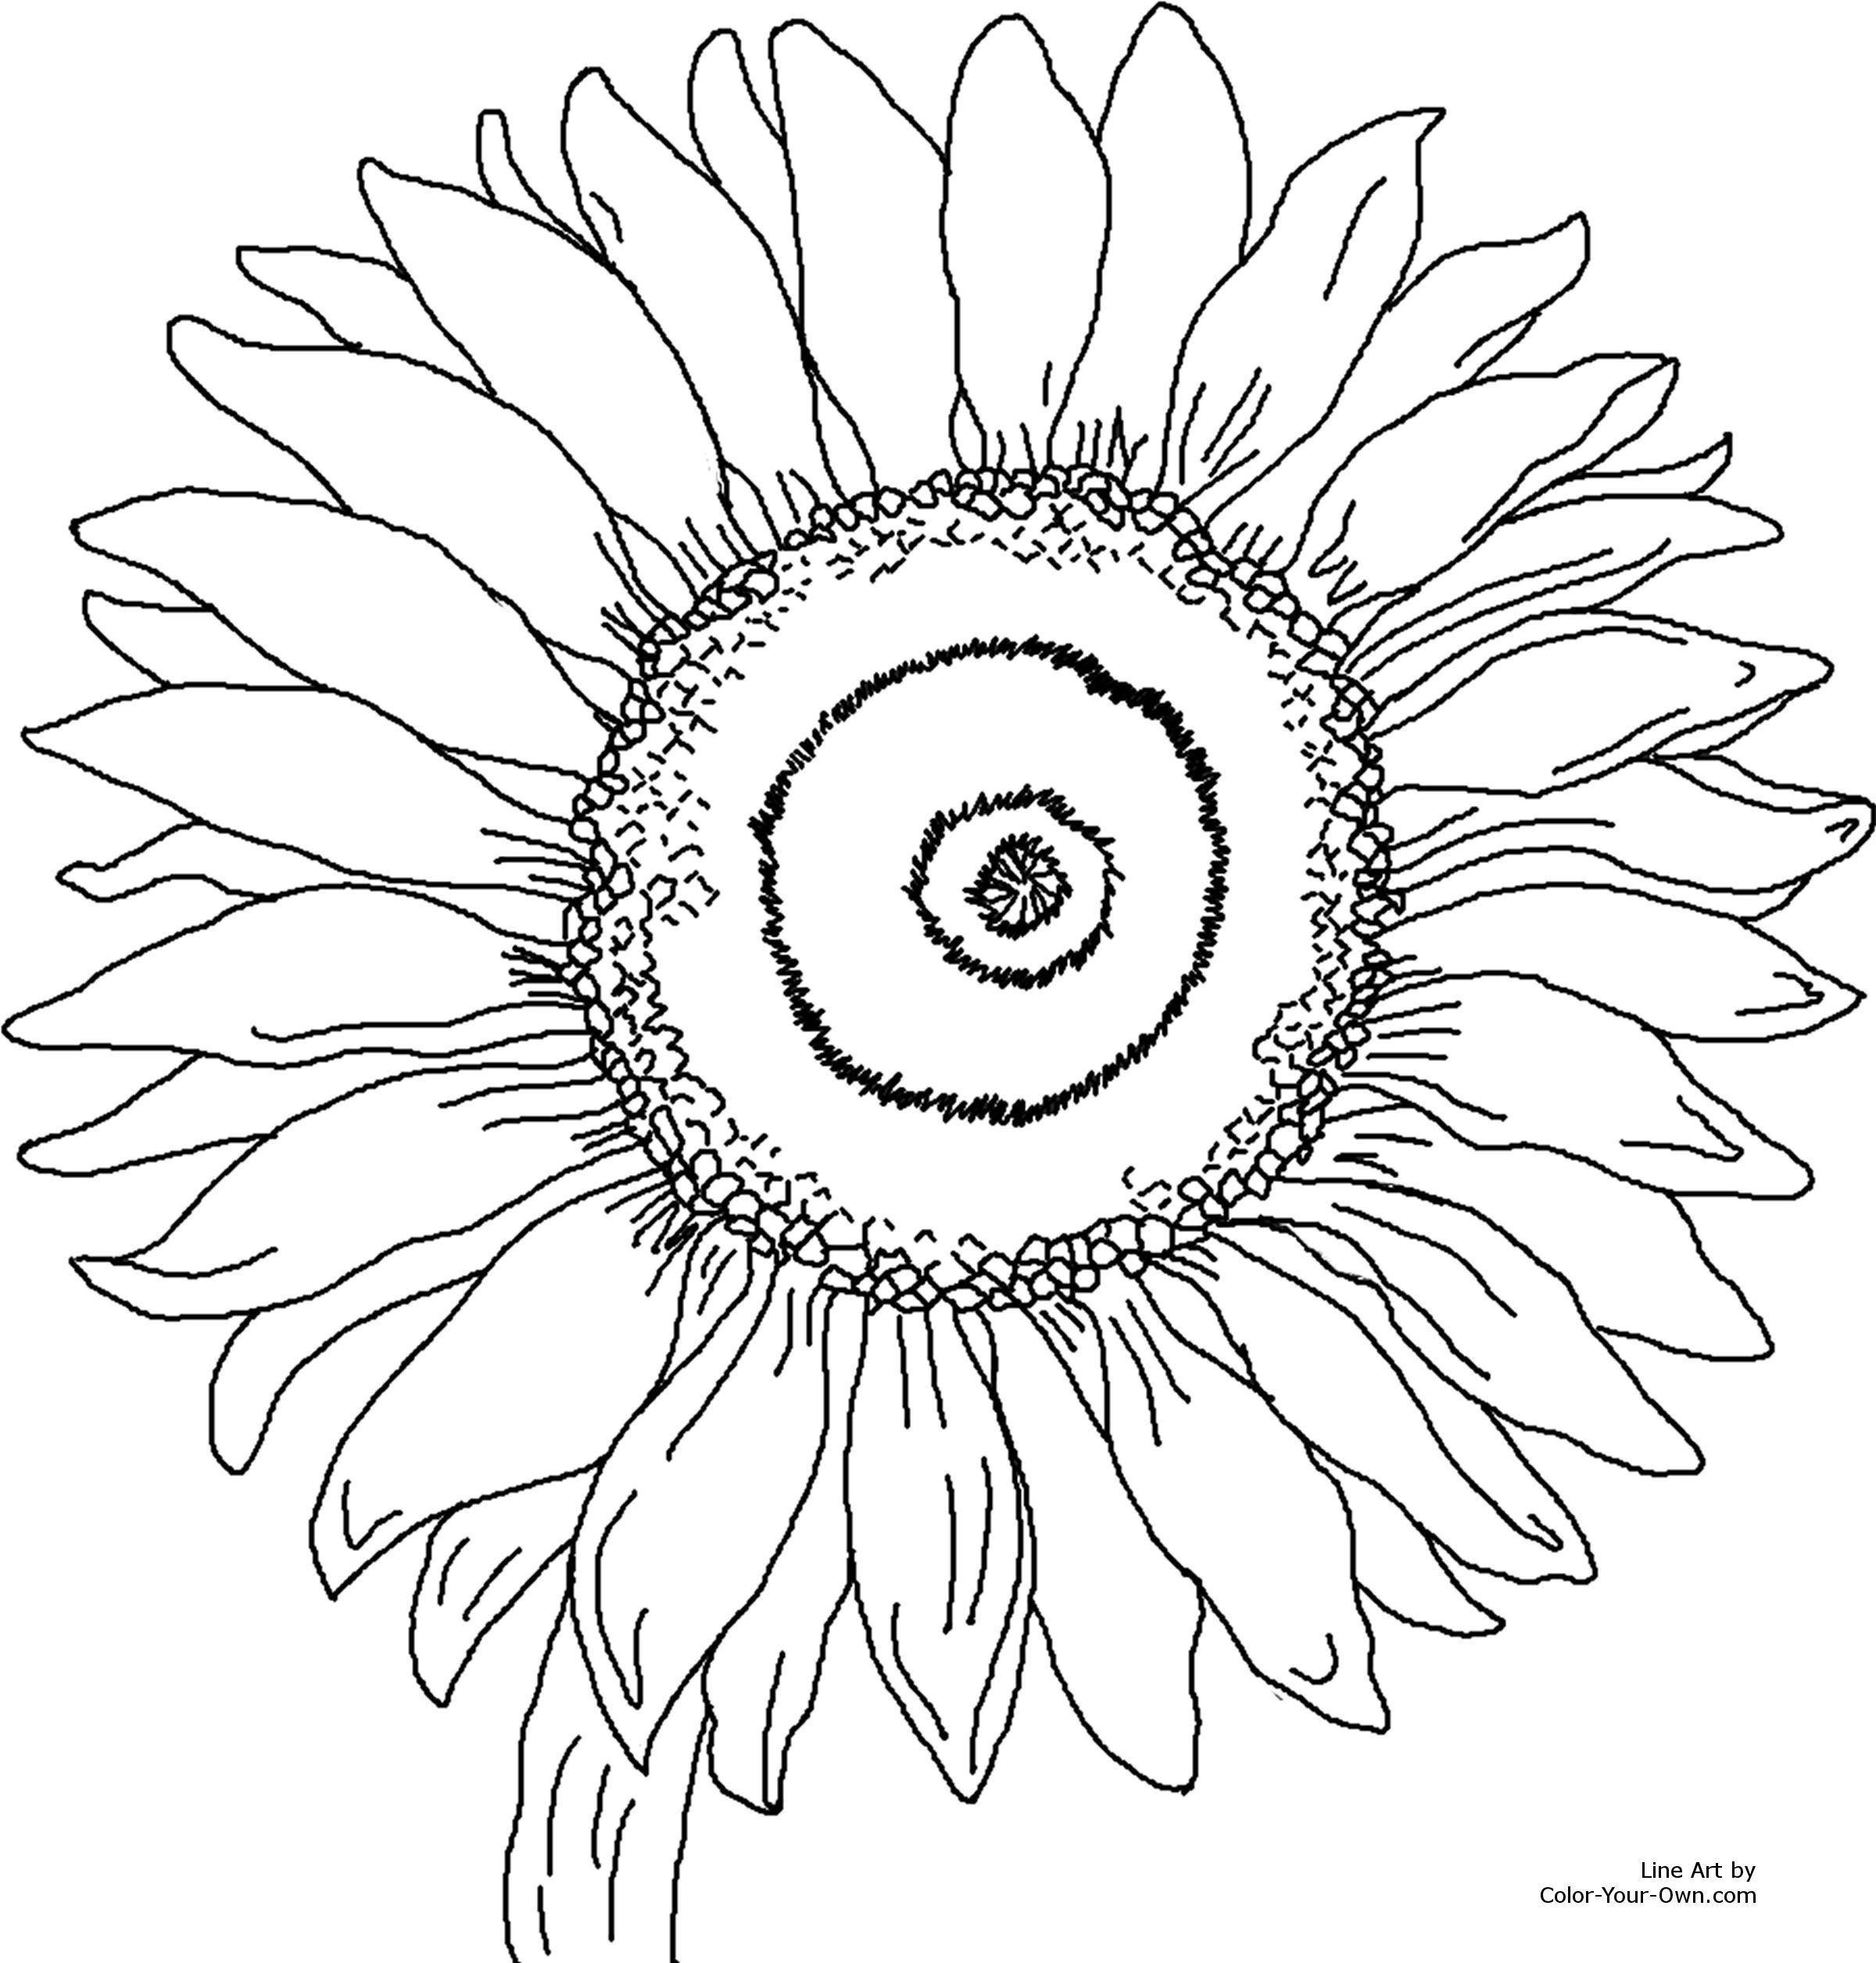 free adult coloring pages to print Bing images